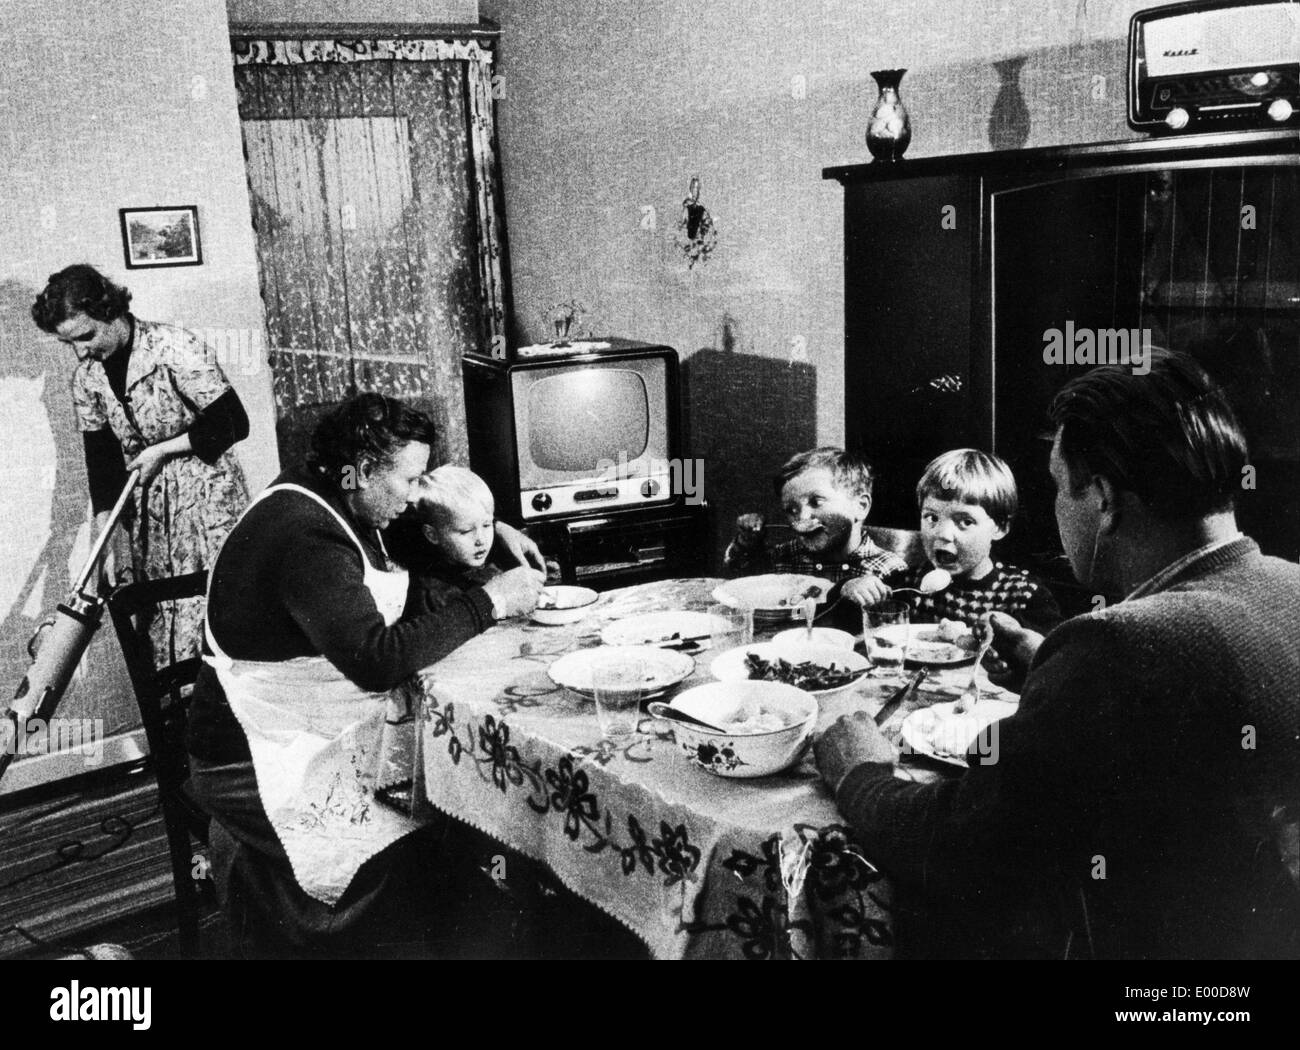 A family eating in the 'parlor', 1959 - Stock Image